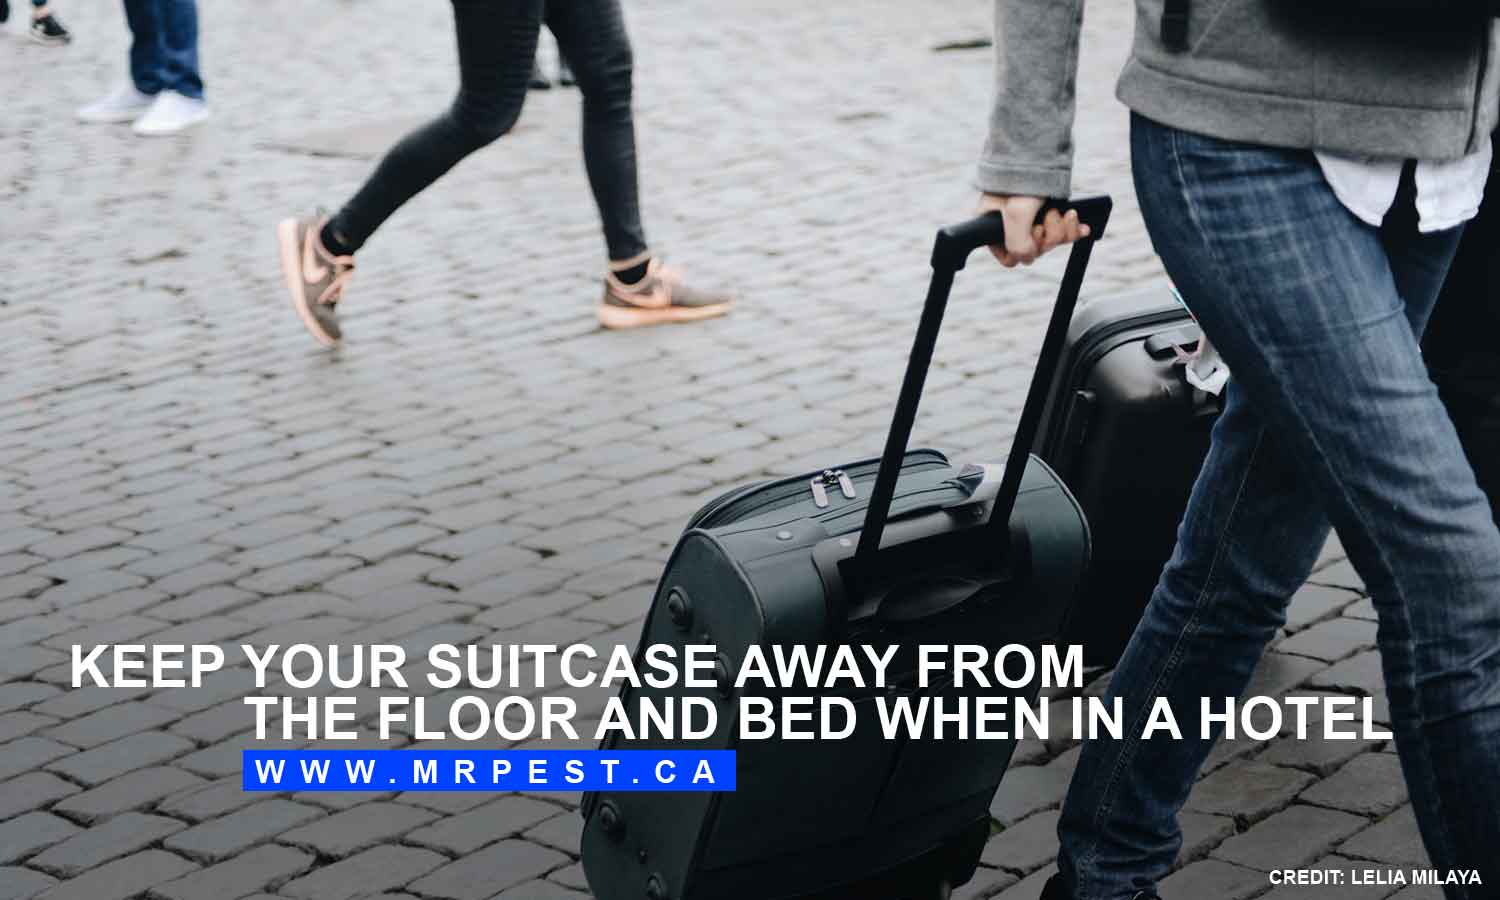 Keep your suitcase away from the floor and bed when in a hotel